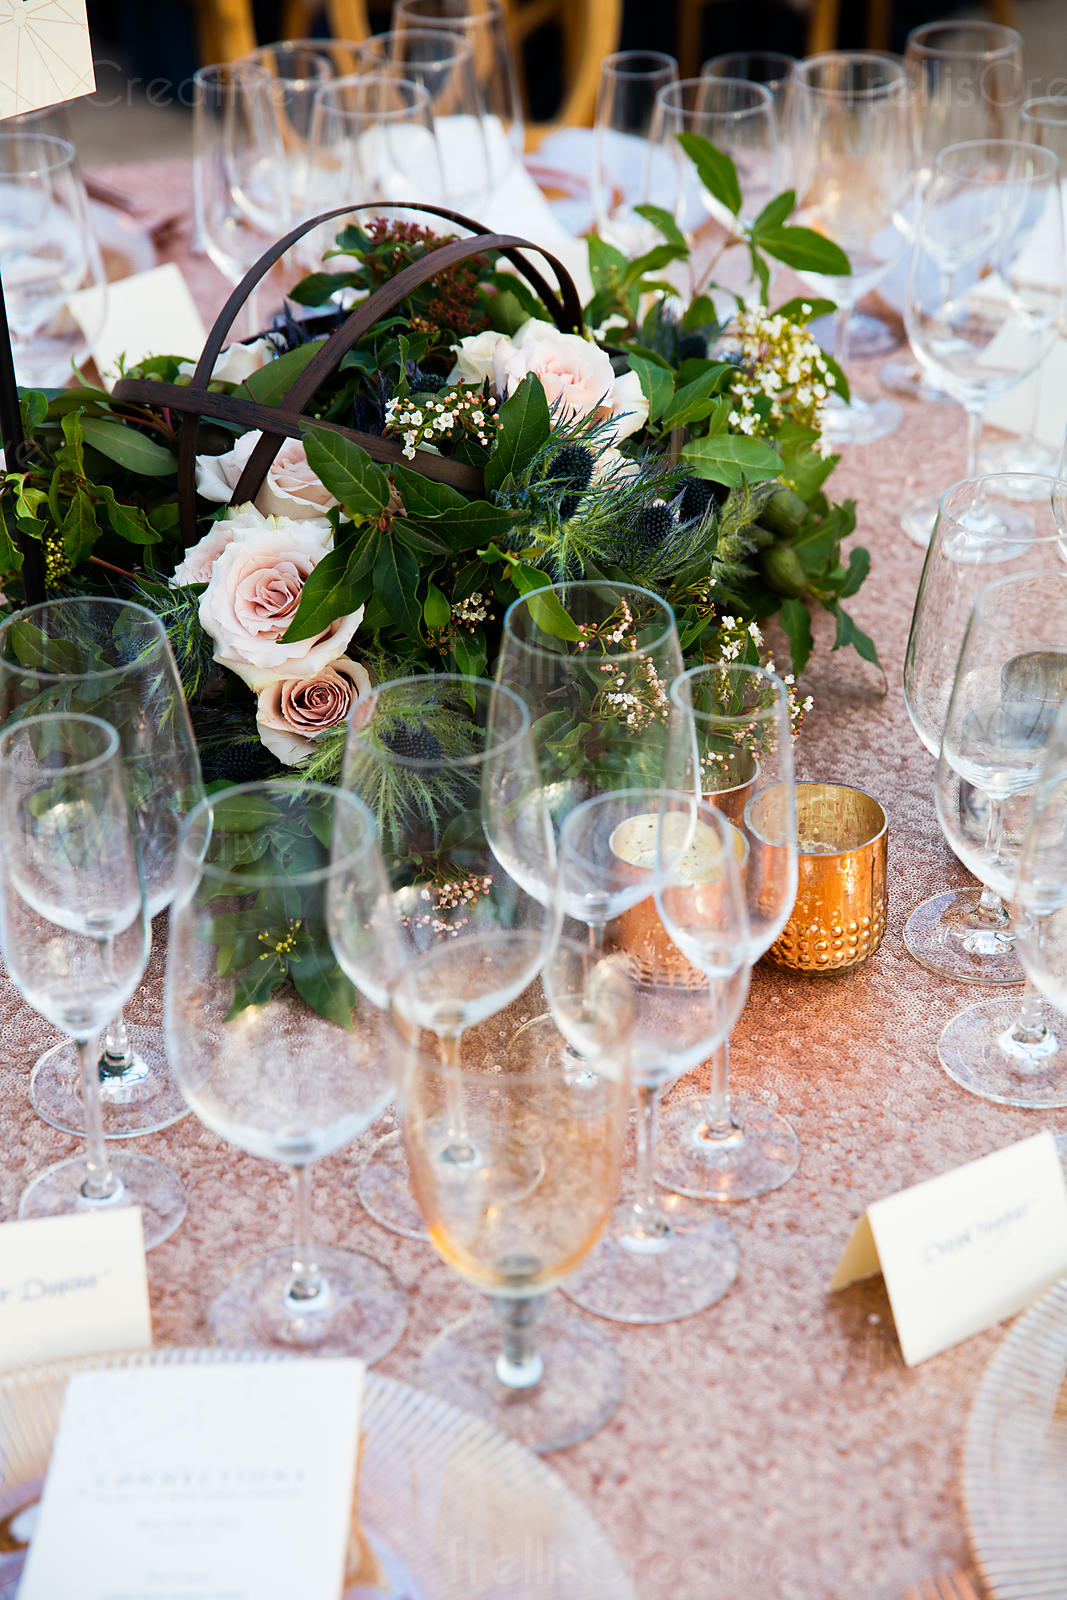 Wine glasses with bouquet on table at an event